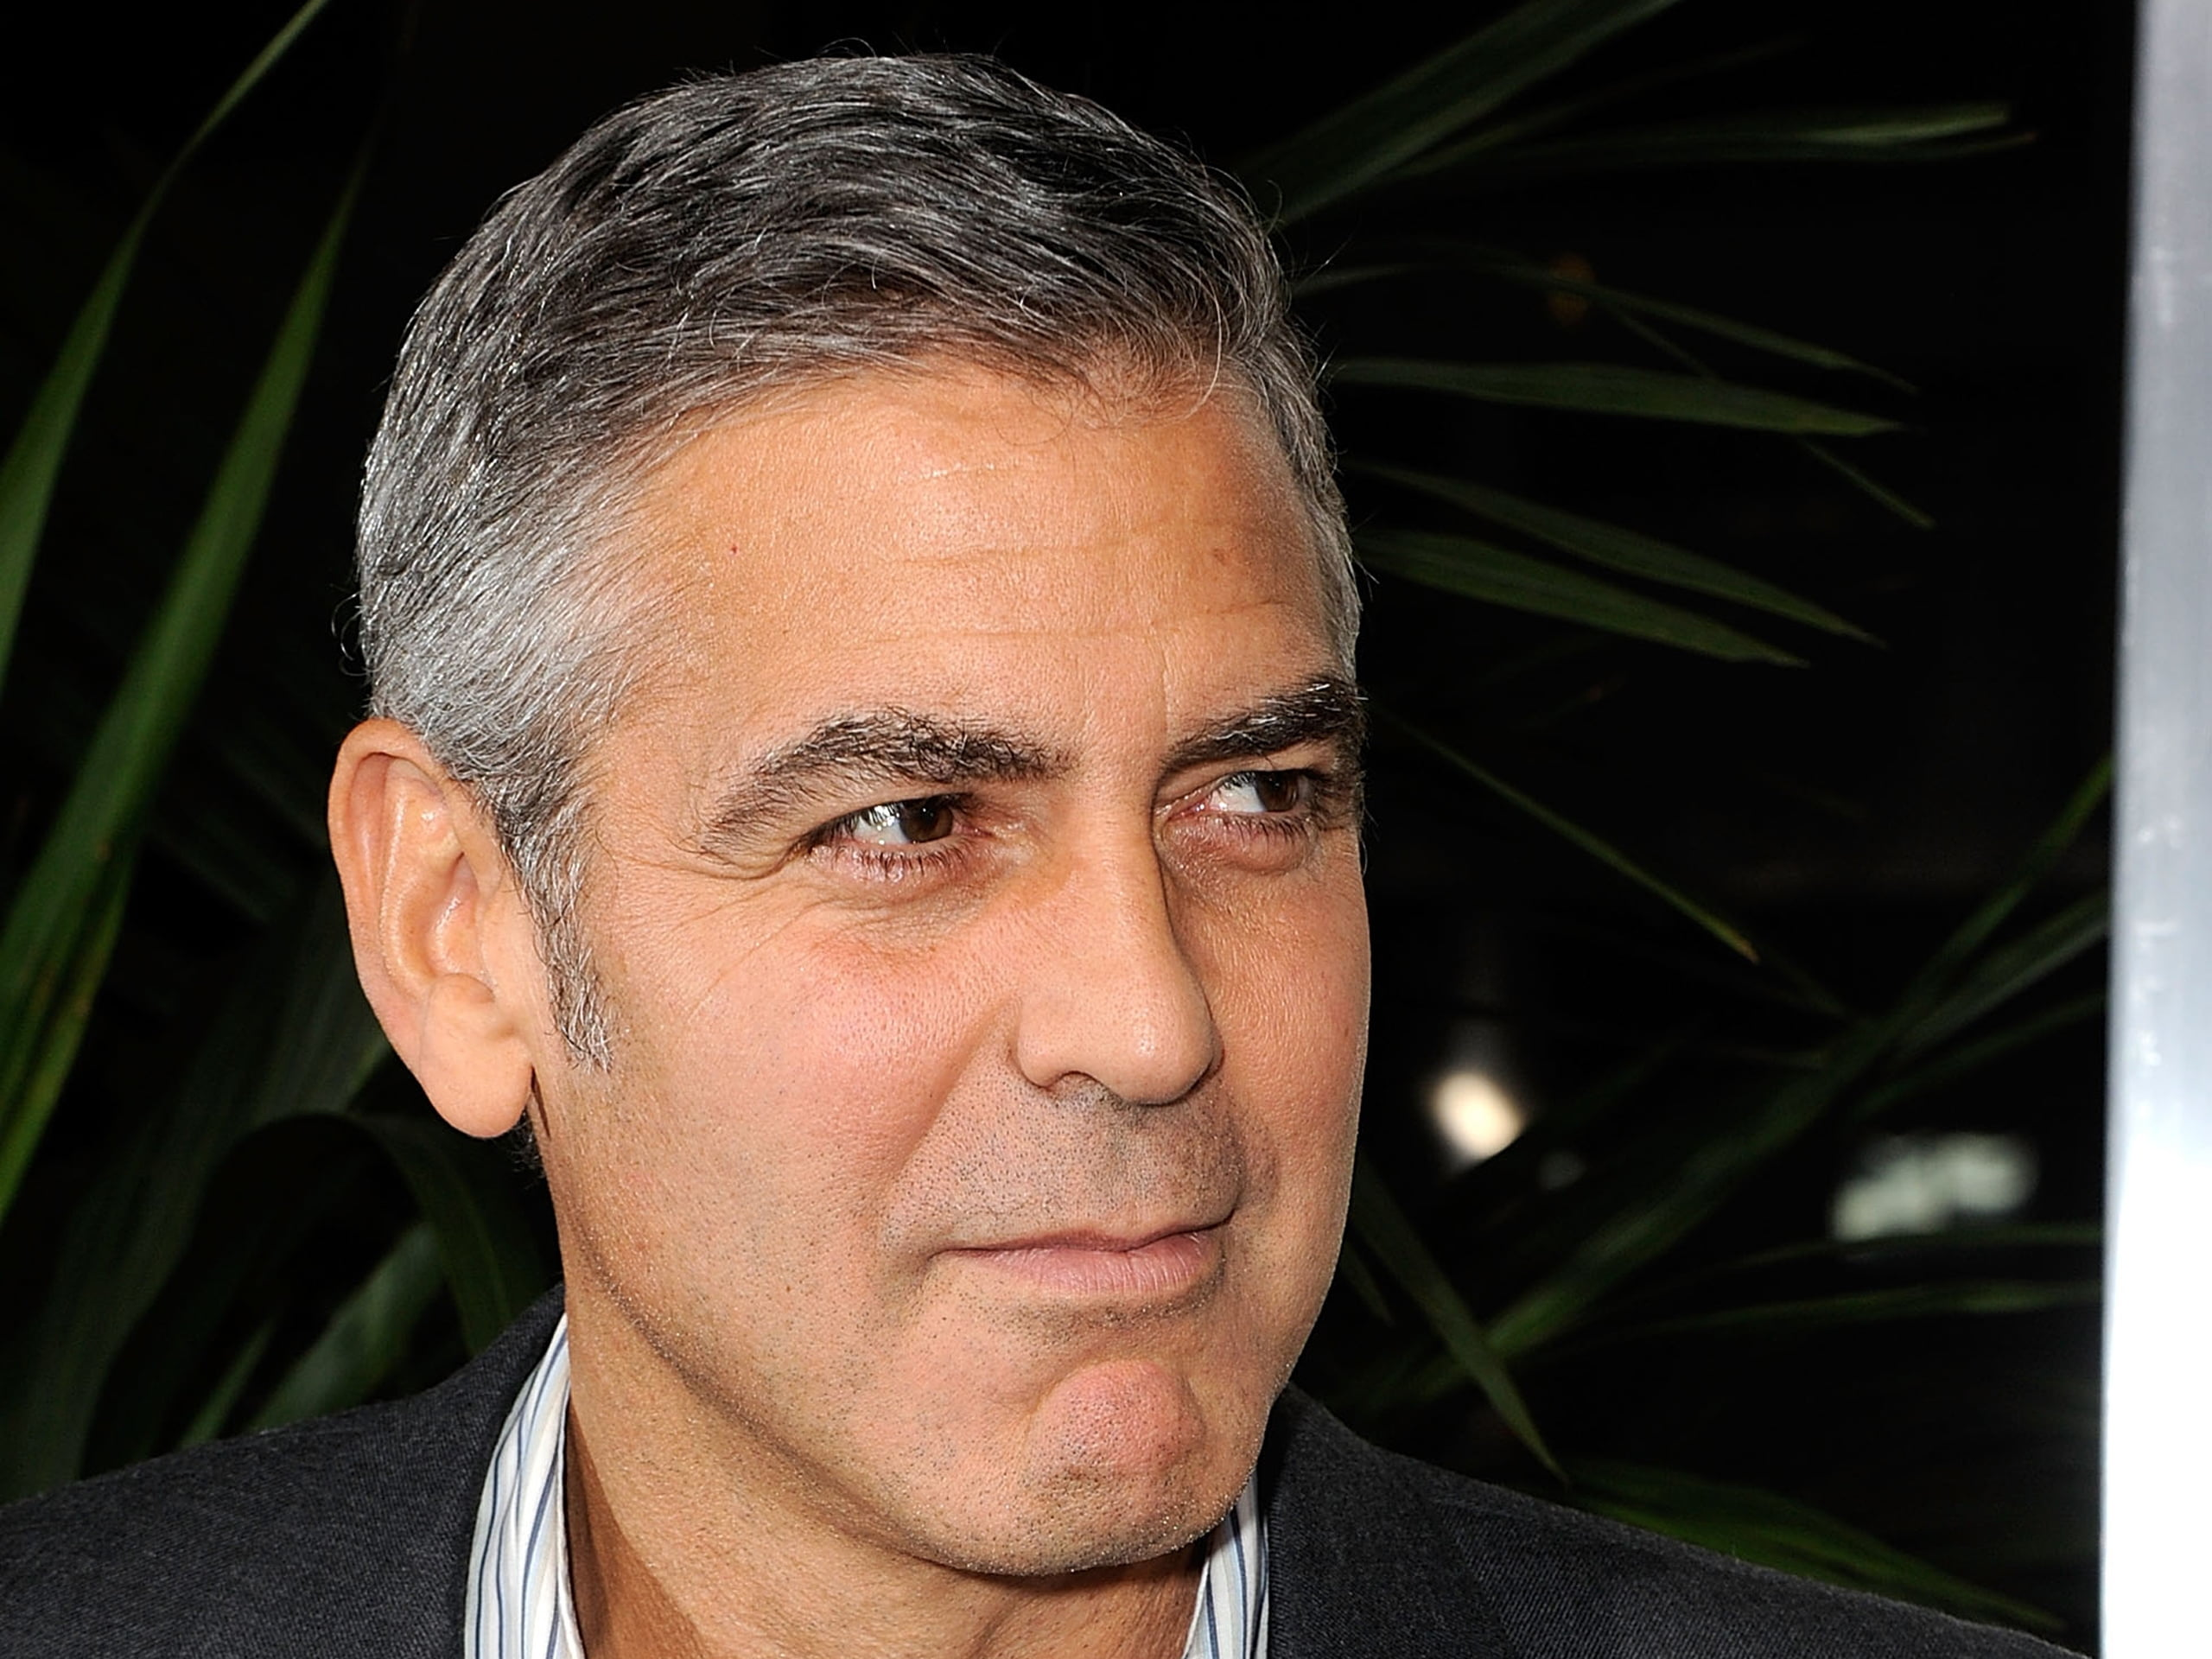 HD wallpaper George Clooney celebrity actor hollywood smile 2560x1920